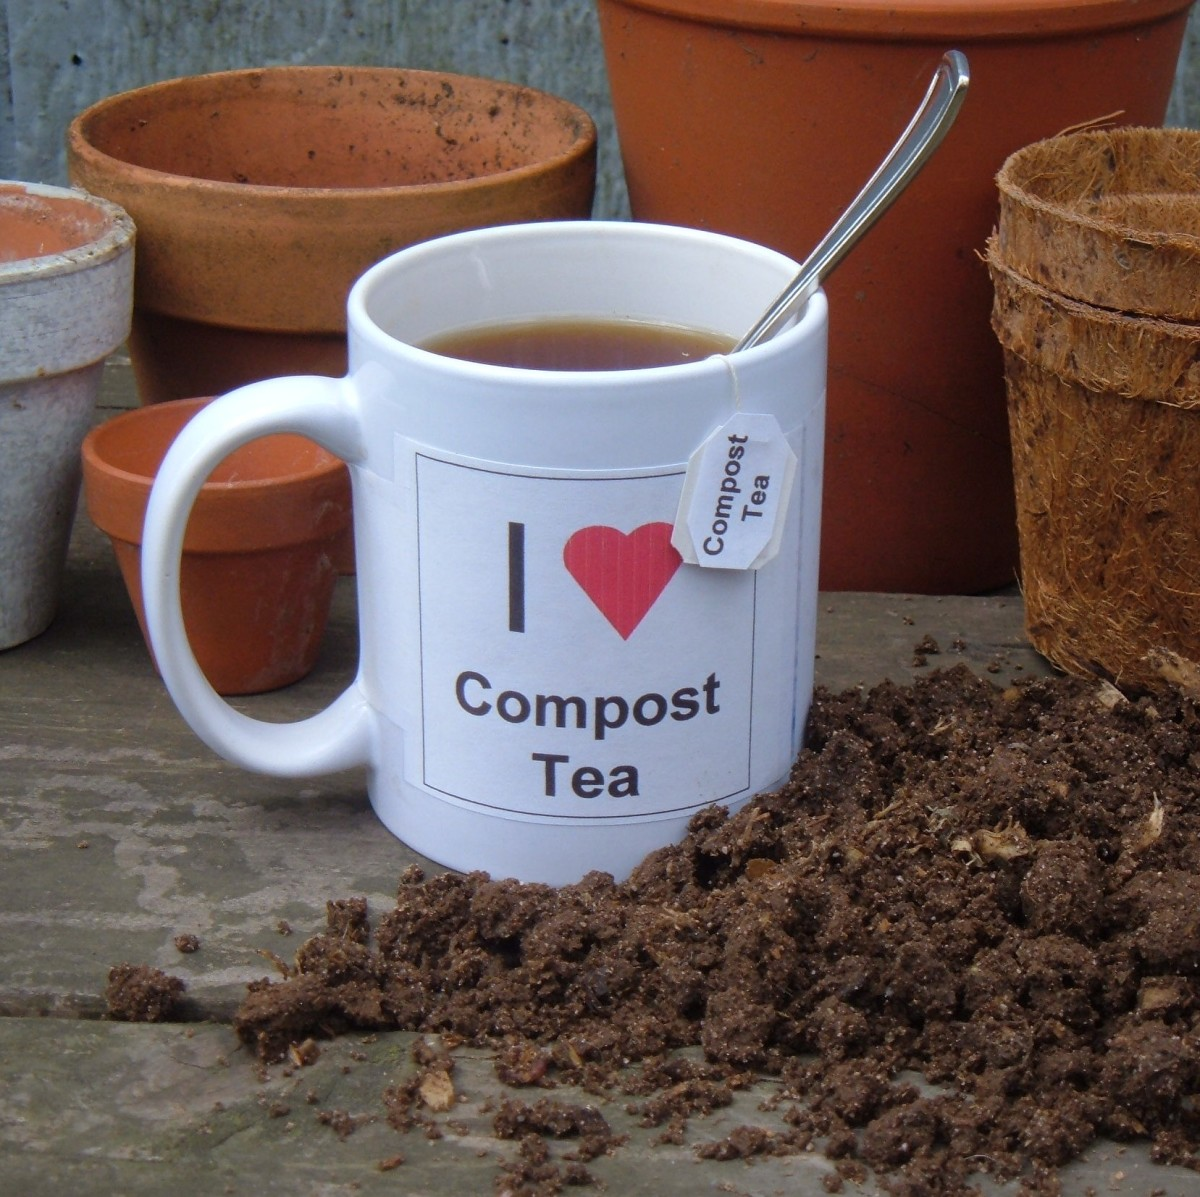 How to Make Compost Tea: The Organic Energy Drink for Plants